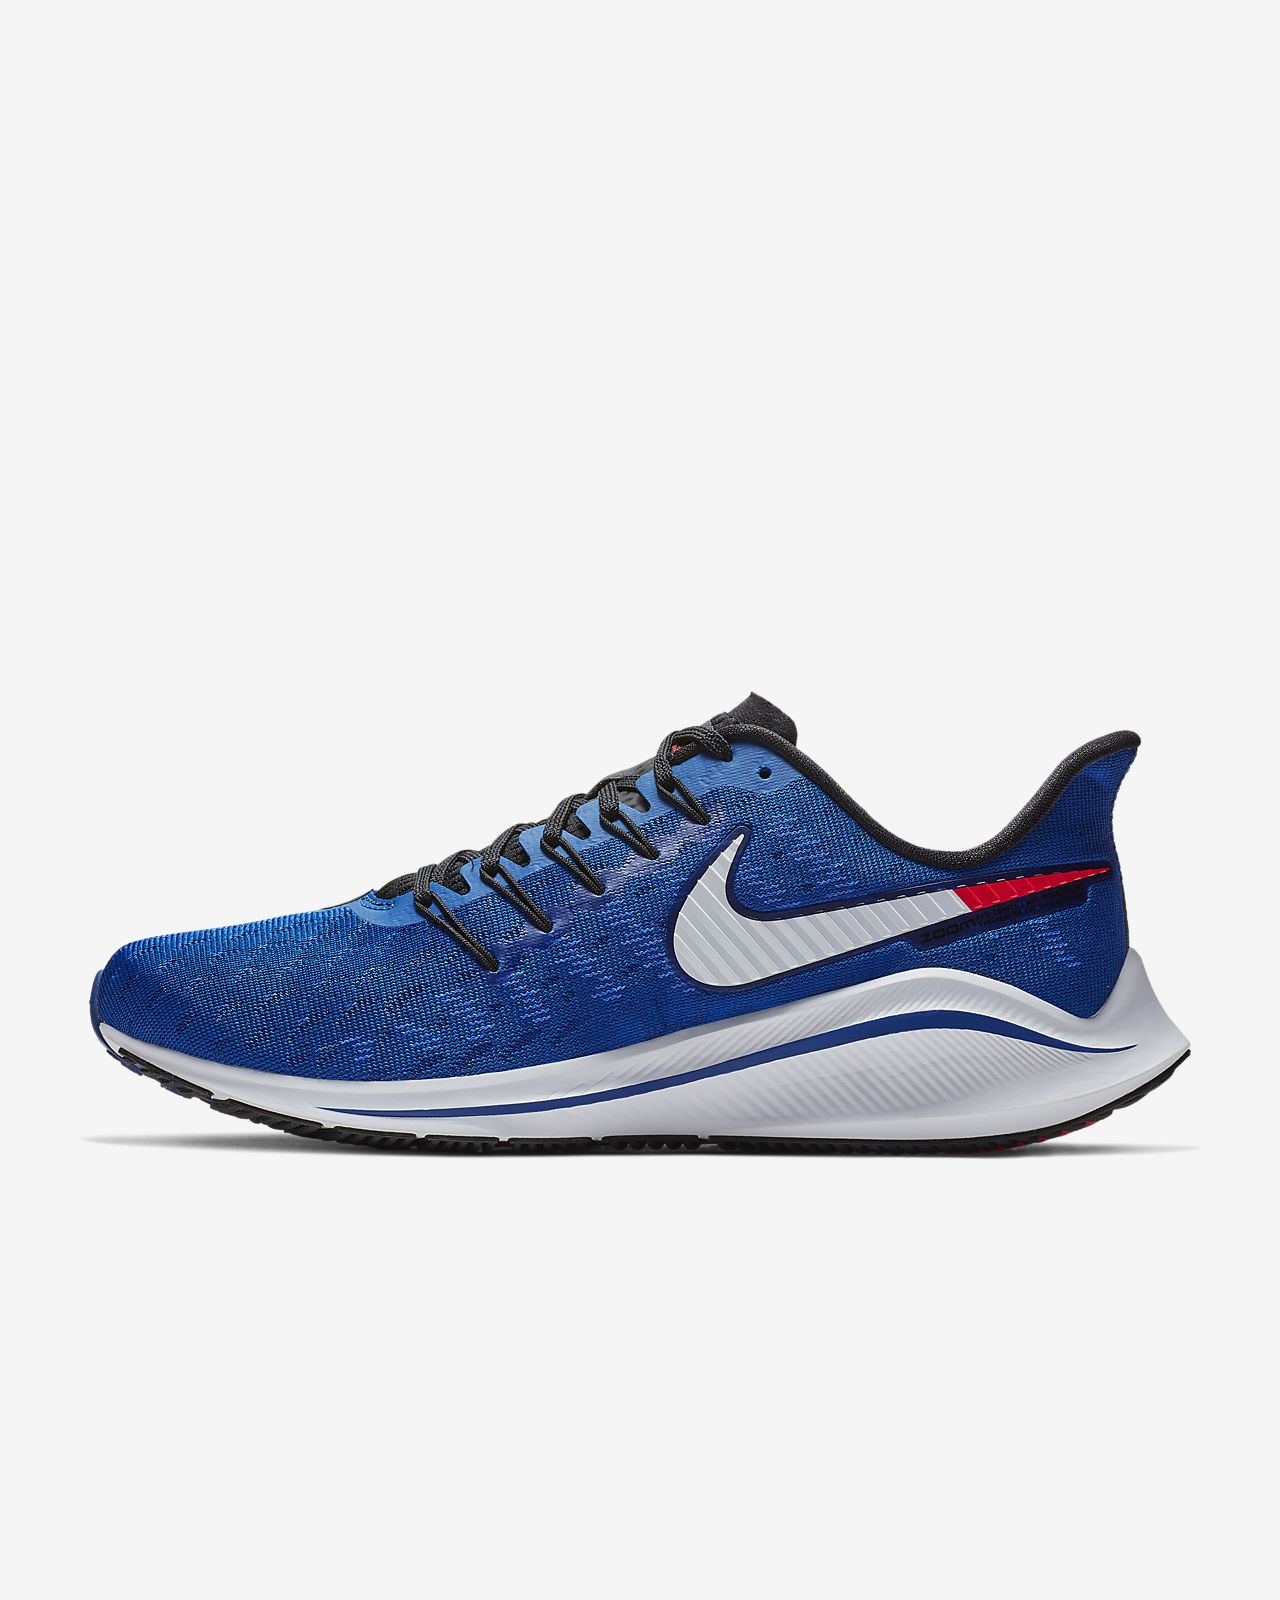 5866d93a7ee7 Nike Air Zoom Vomero 14 Men s Running Shoe. Nike.com IE